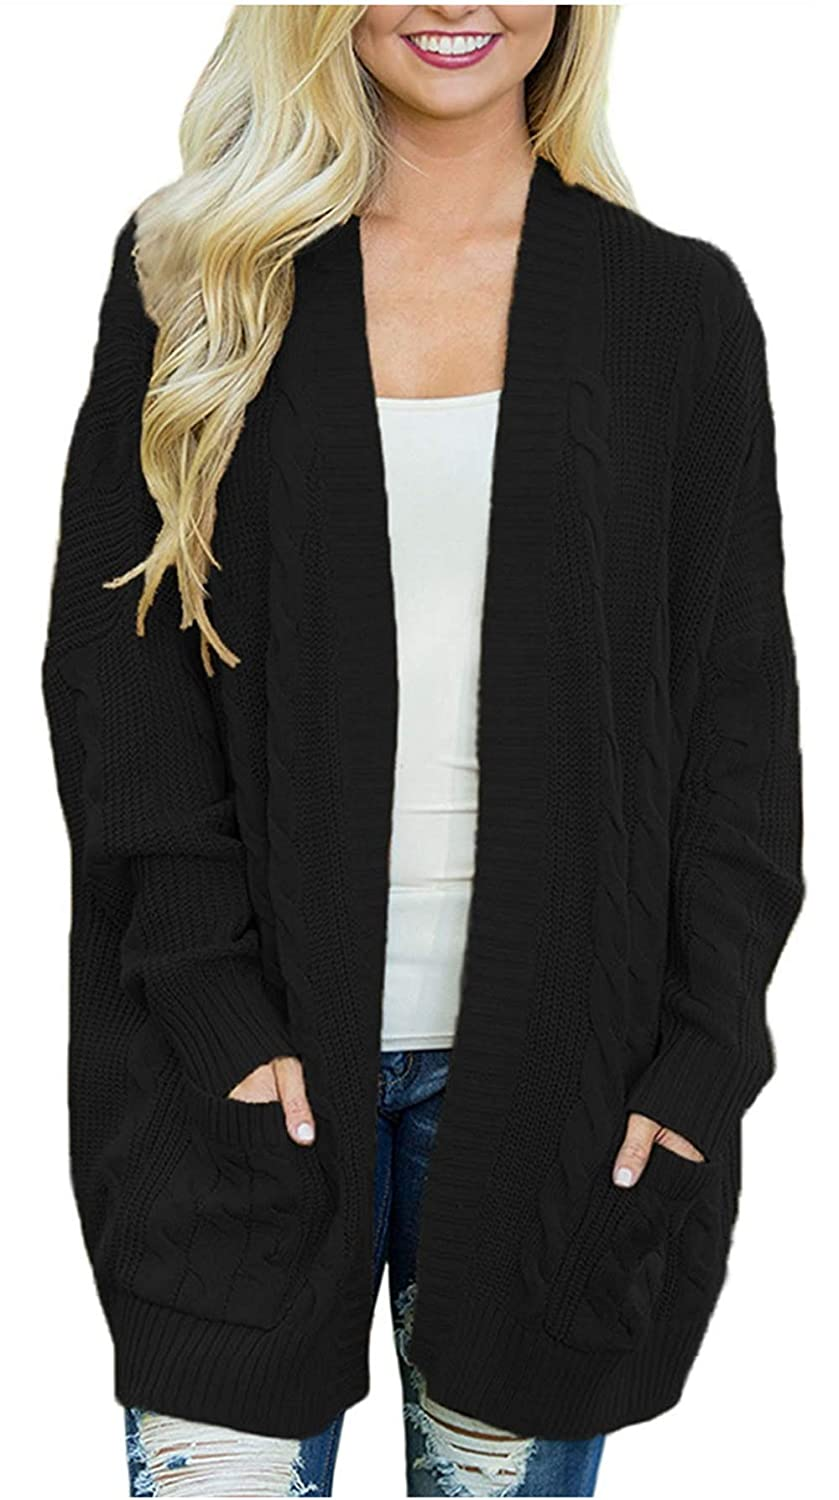 15c8b7f64c Top 10 wholesale Oversized Cable Knit Cardigan - Chinabrands.com